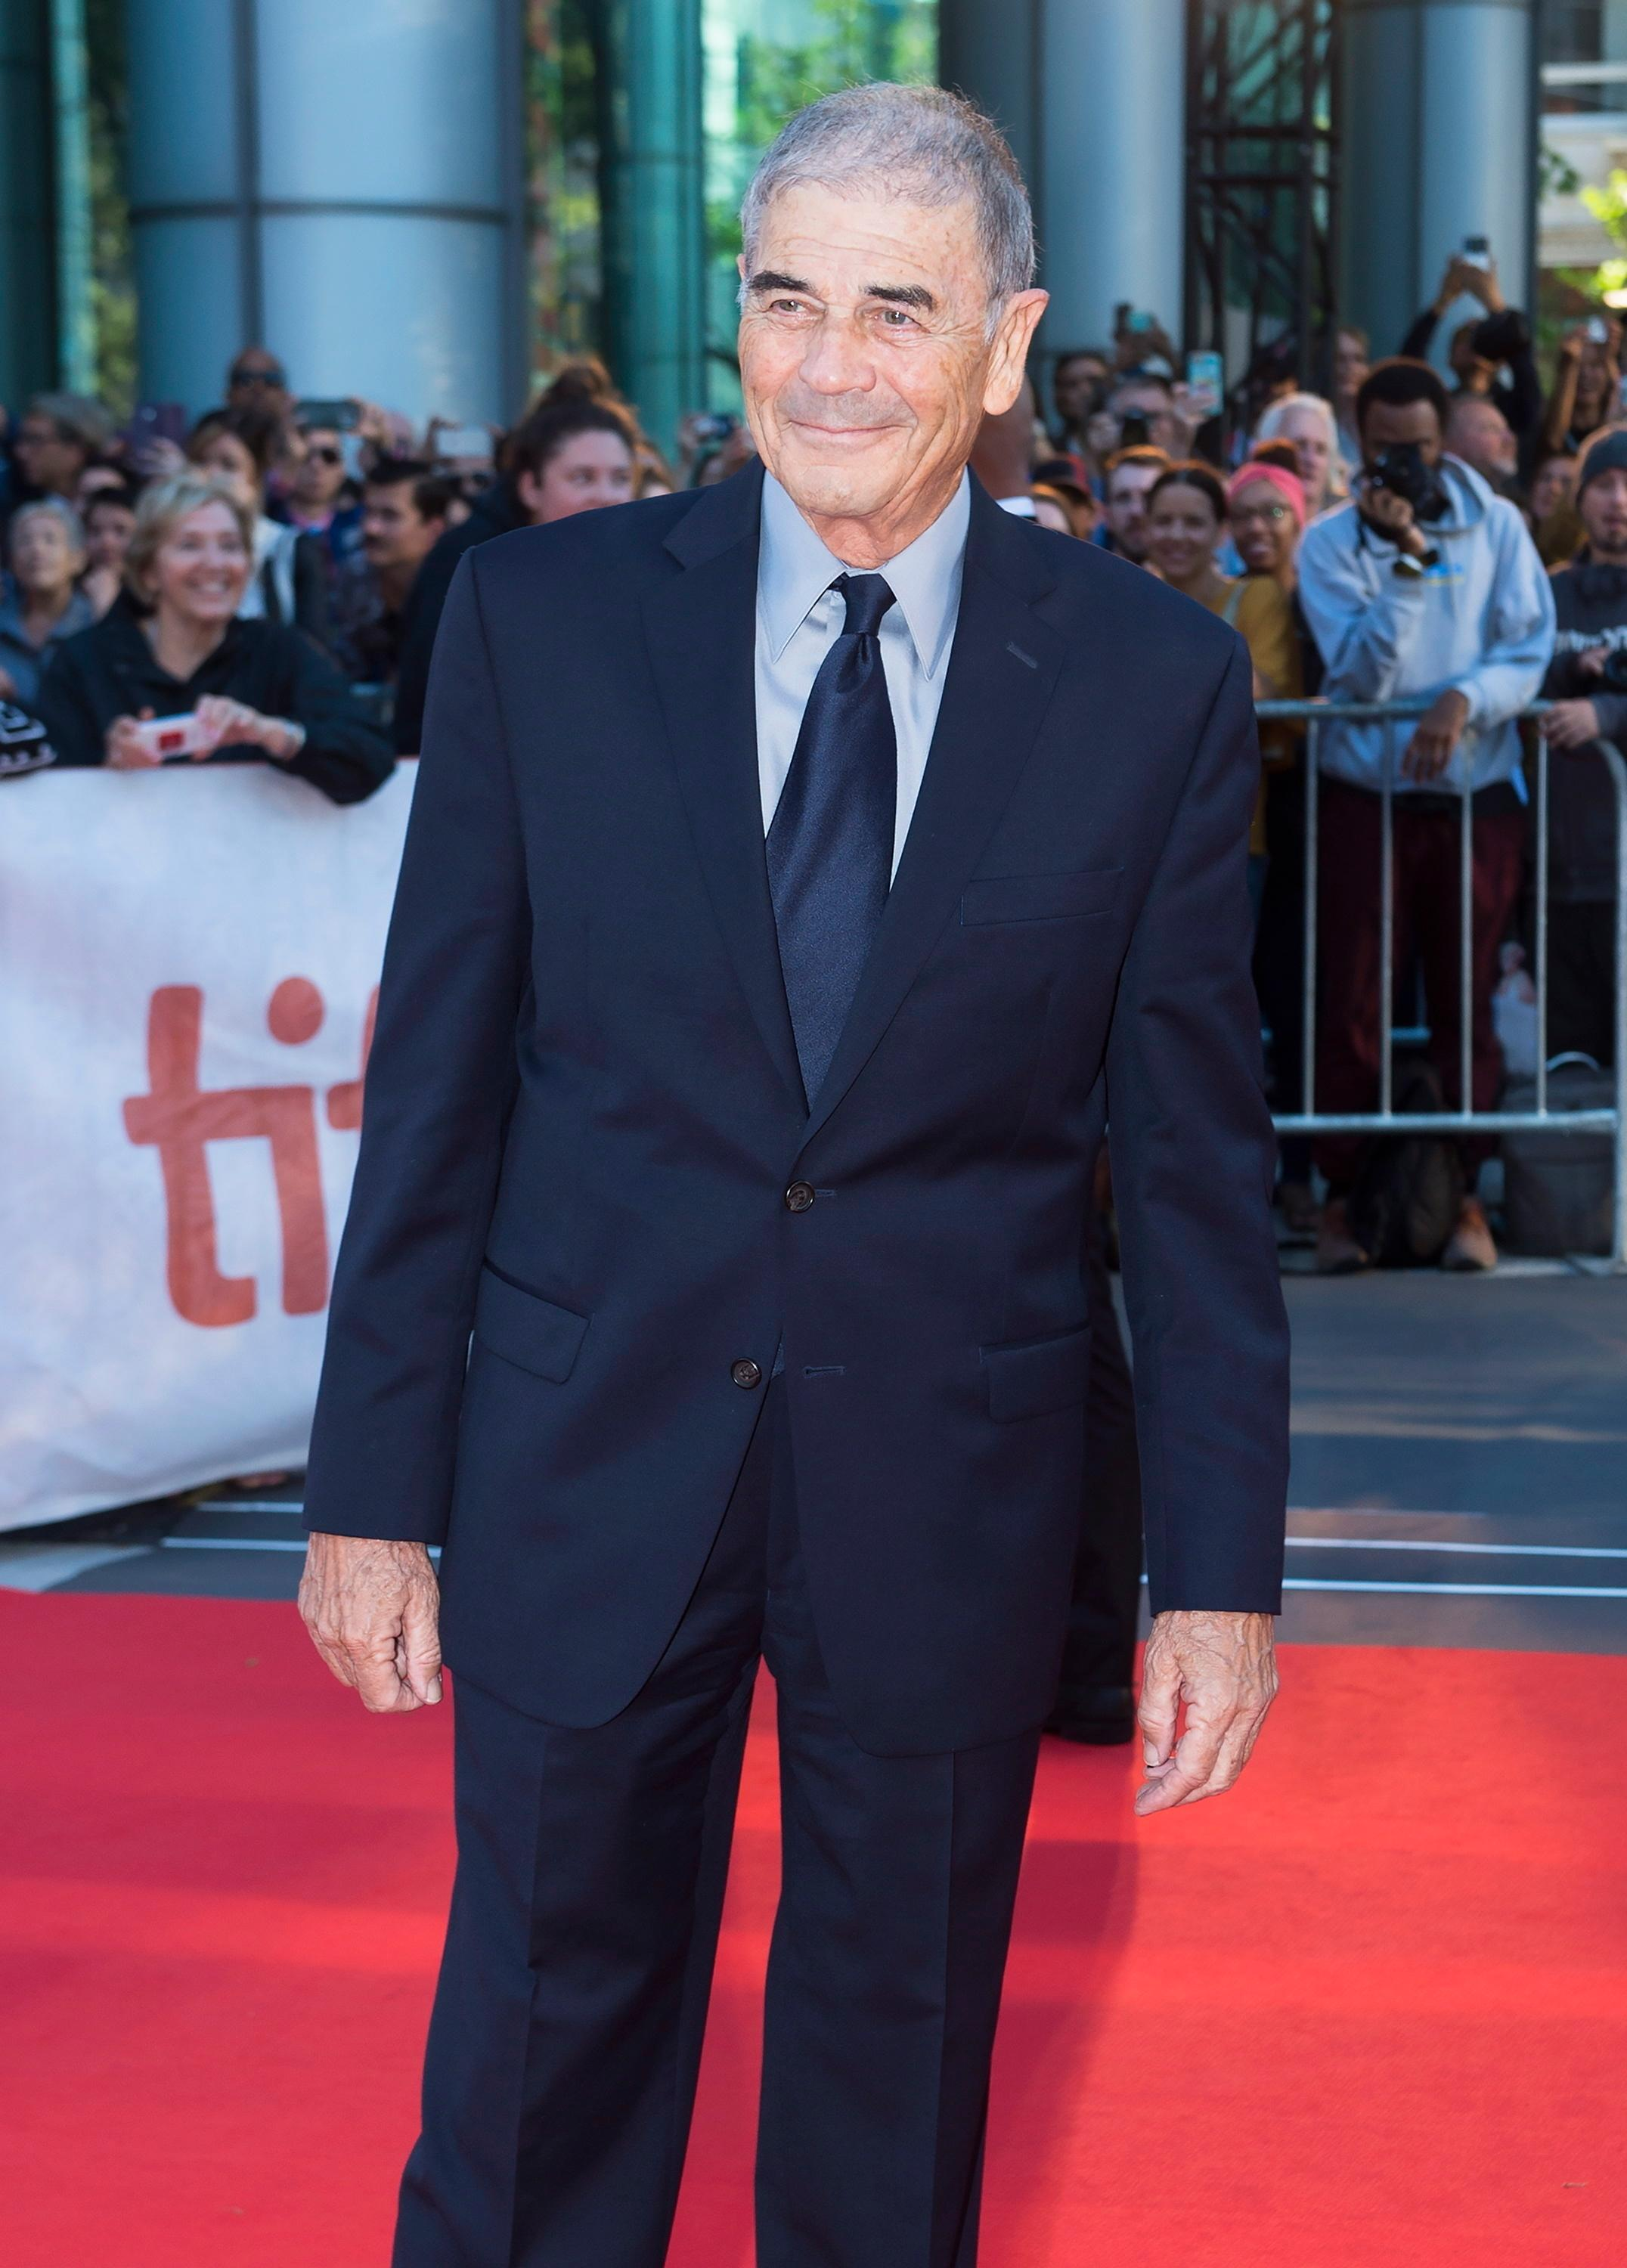 "FILE - In this Sept. 12, 2018 file photo, actor Robert Forster poses for photographs on the red carpet for the new movie ""What They Had"" during the 2018 Toronto International Film Festival in Toronto. Forster, the handsome character actor who got a career resurgence and Oscar-nomination for playing bail bondsman Max Cherry in ""Jackie Brown,"" has died at age 78. Forster's agent Julia Buchwald says he died Friday, Oct. 11, 2019, at home in Los Angeles of brain cancer. (Nathan Denette/The Canadian Press via AP, File)"